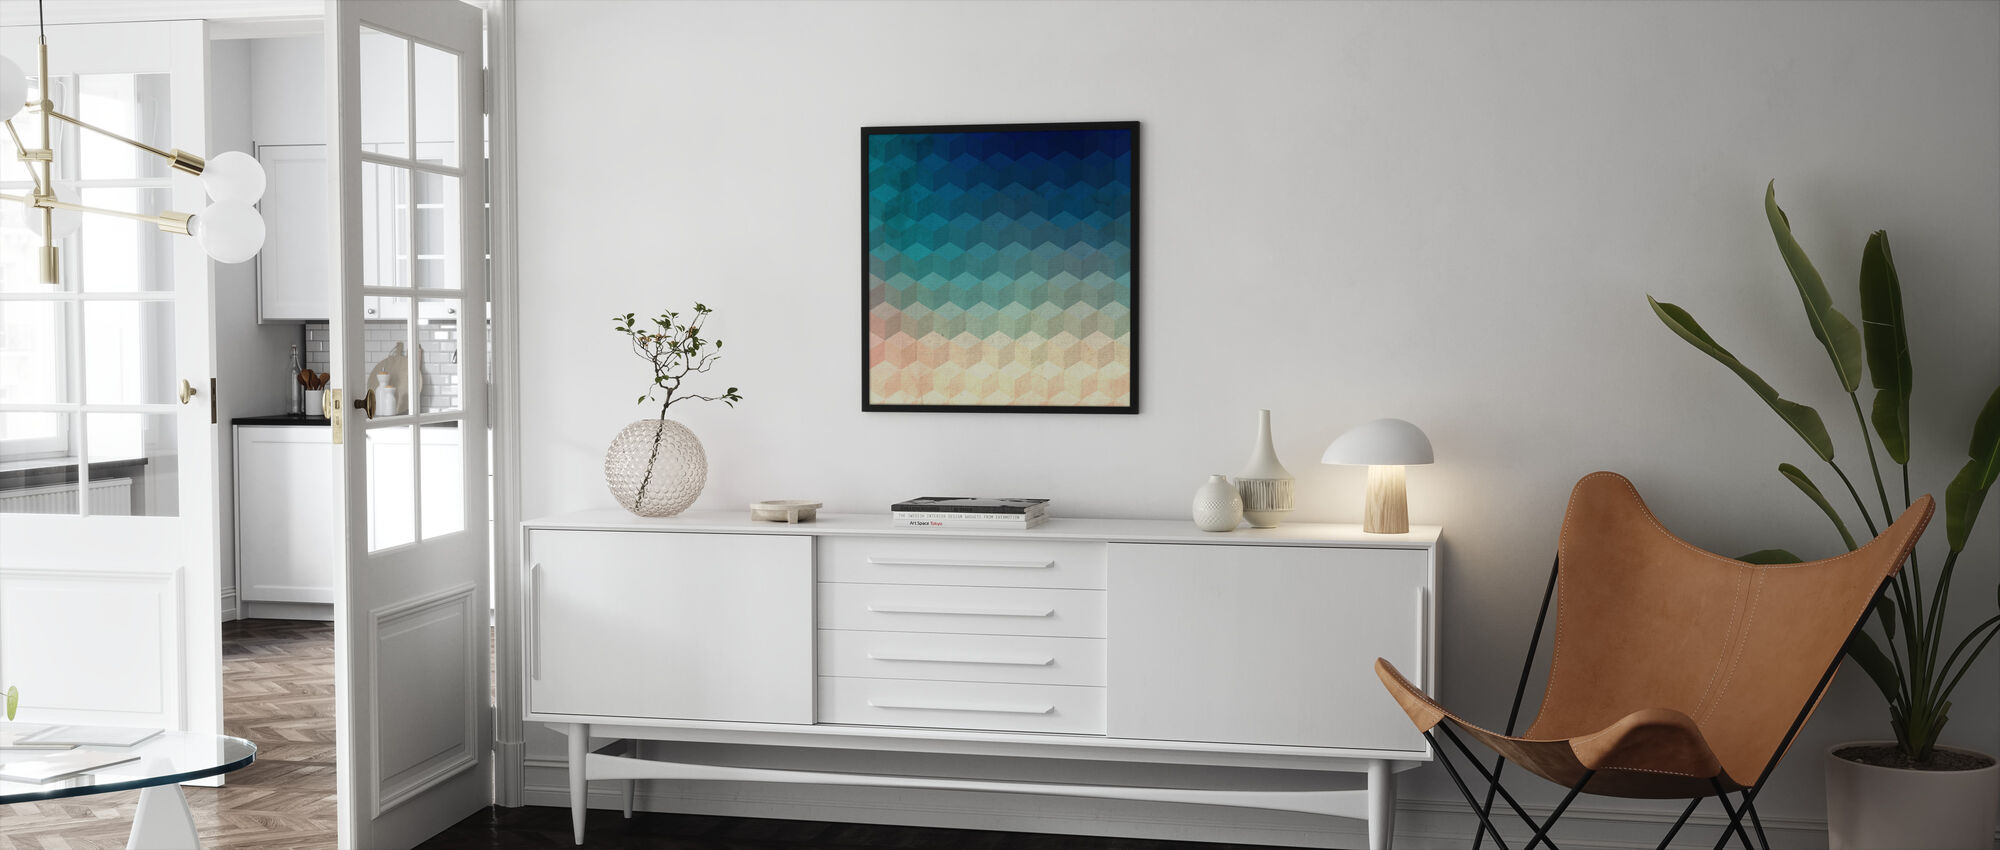 Hexagon Cubes - Framed print - Living Room